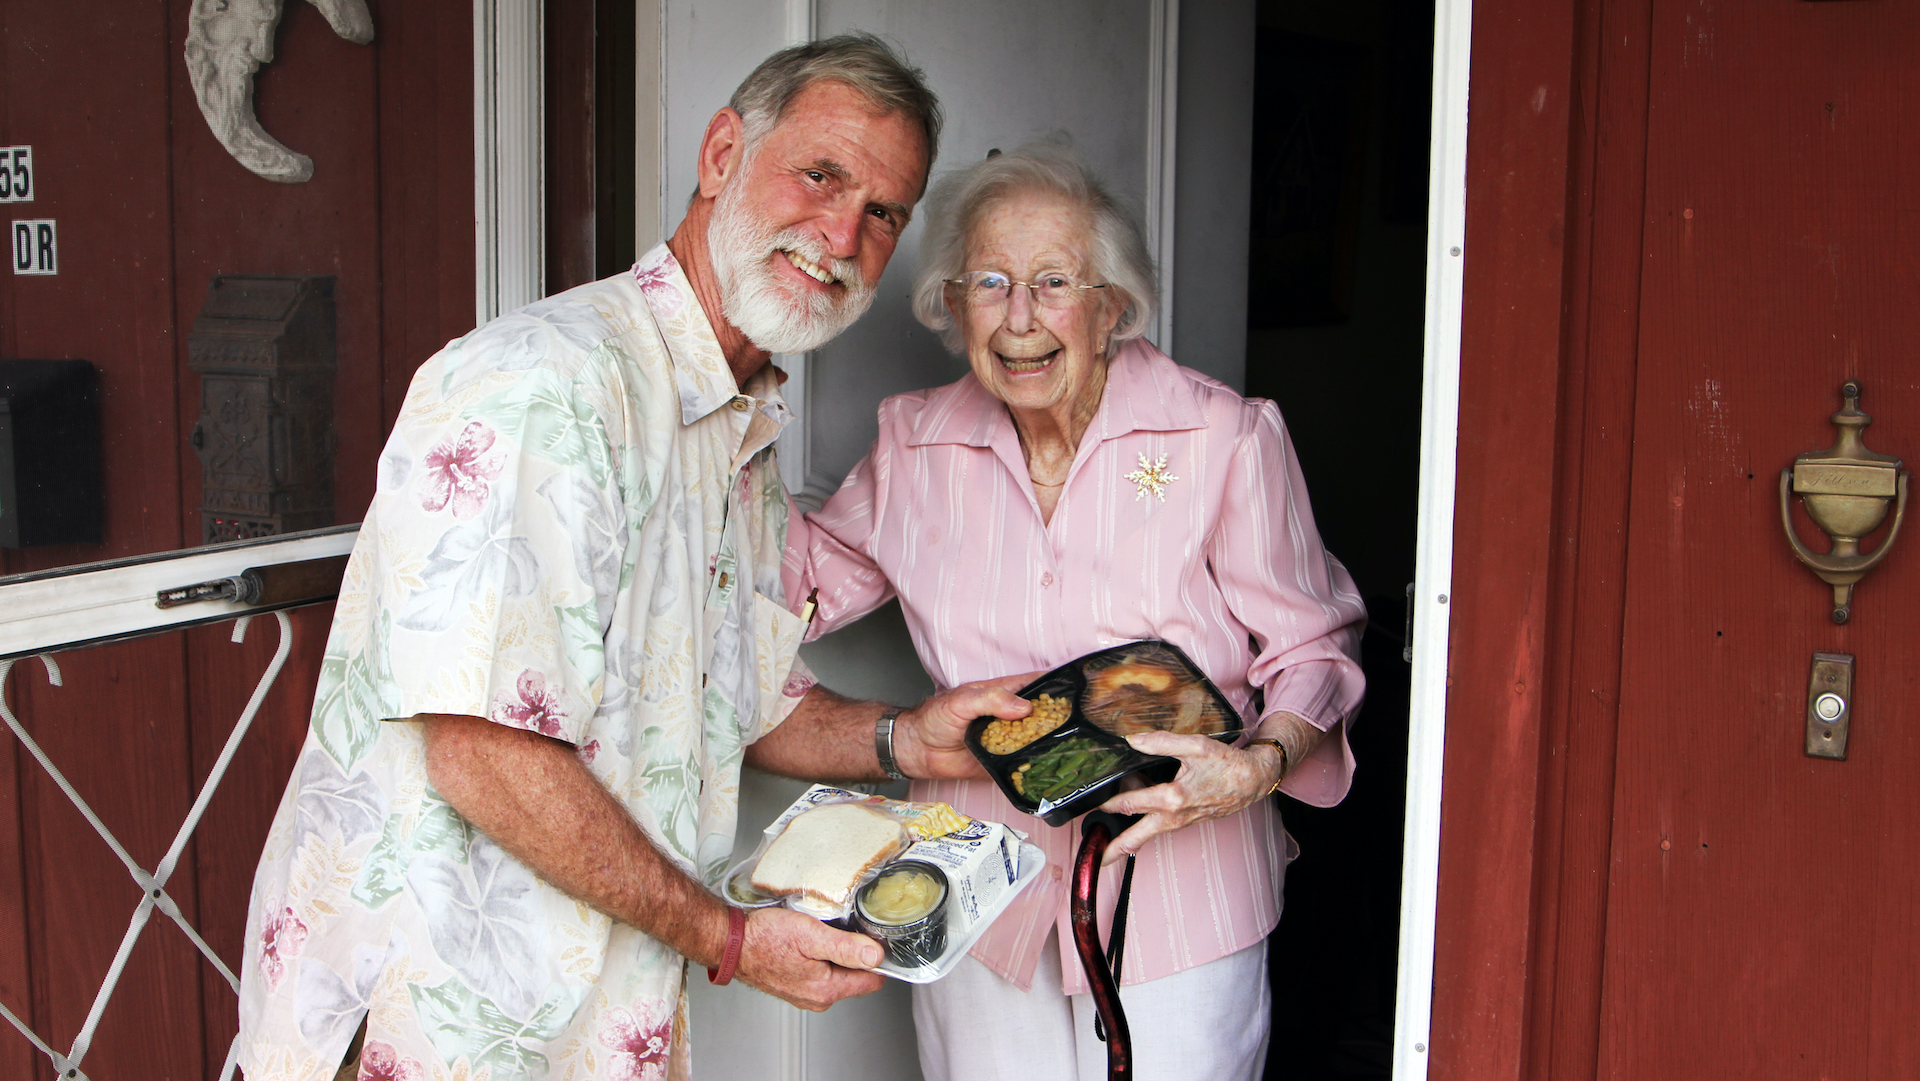 Meals on Wheels delivery to a senior resident